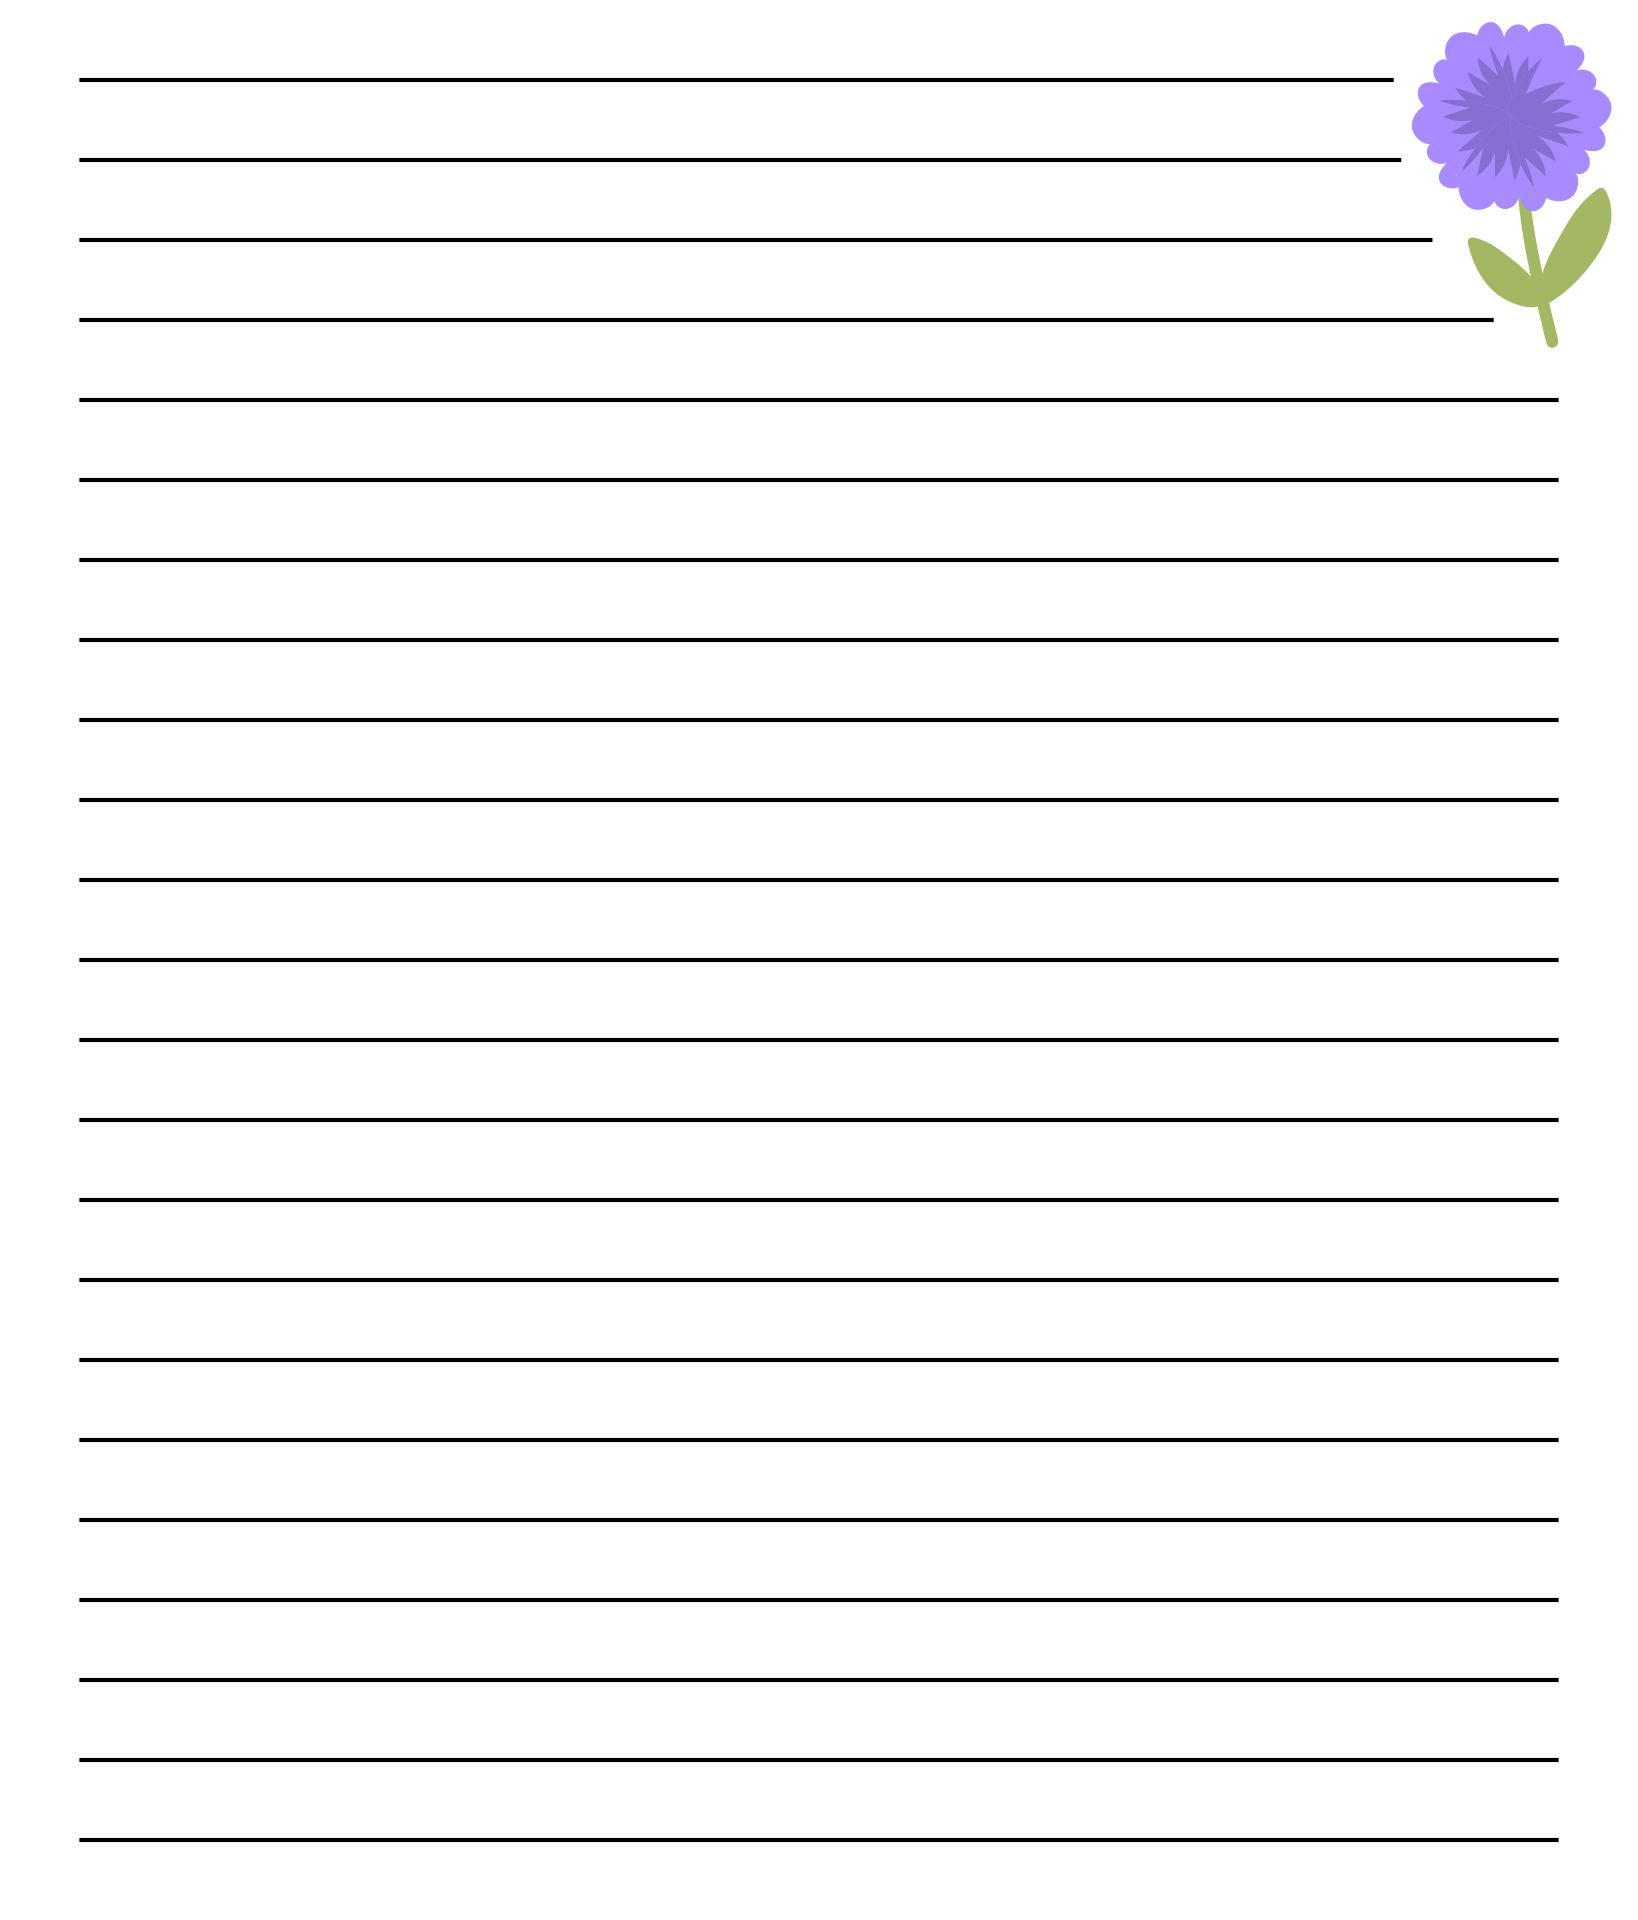 Border paper writing – Free Printable Lined Stationary